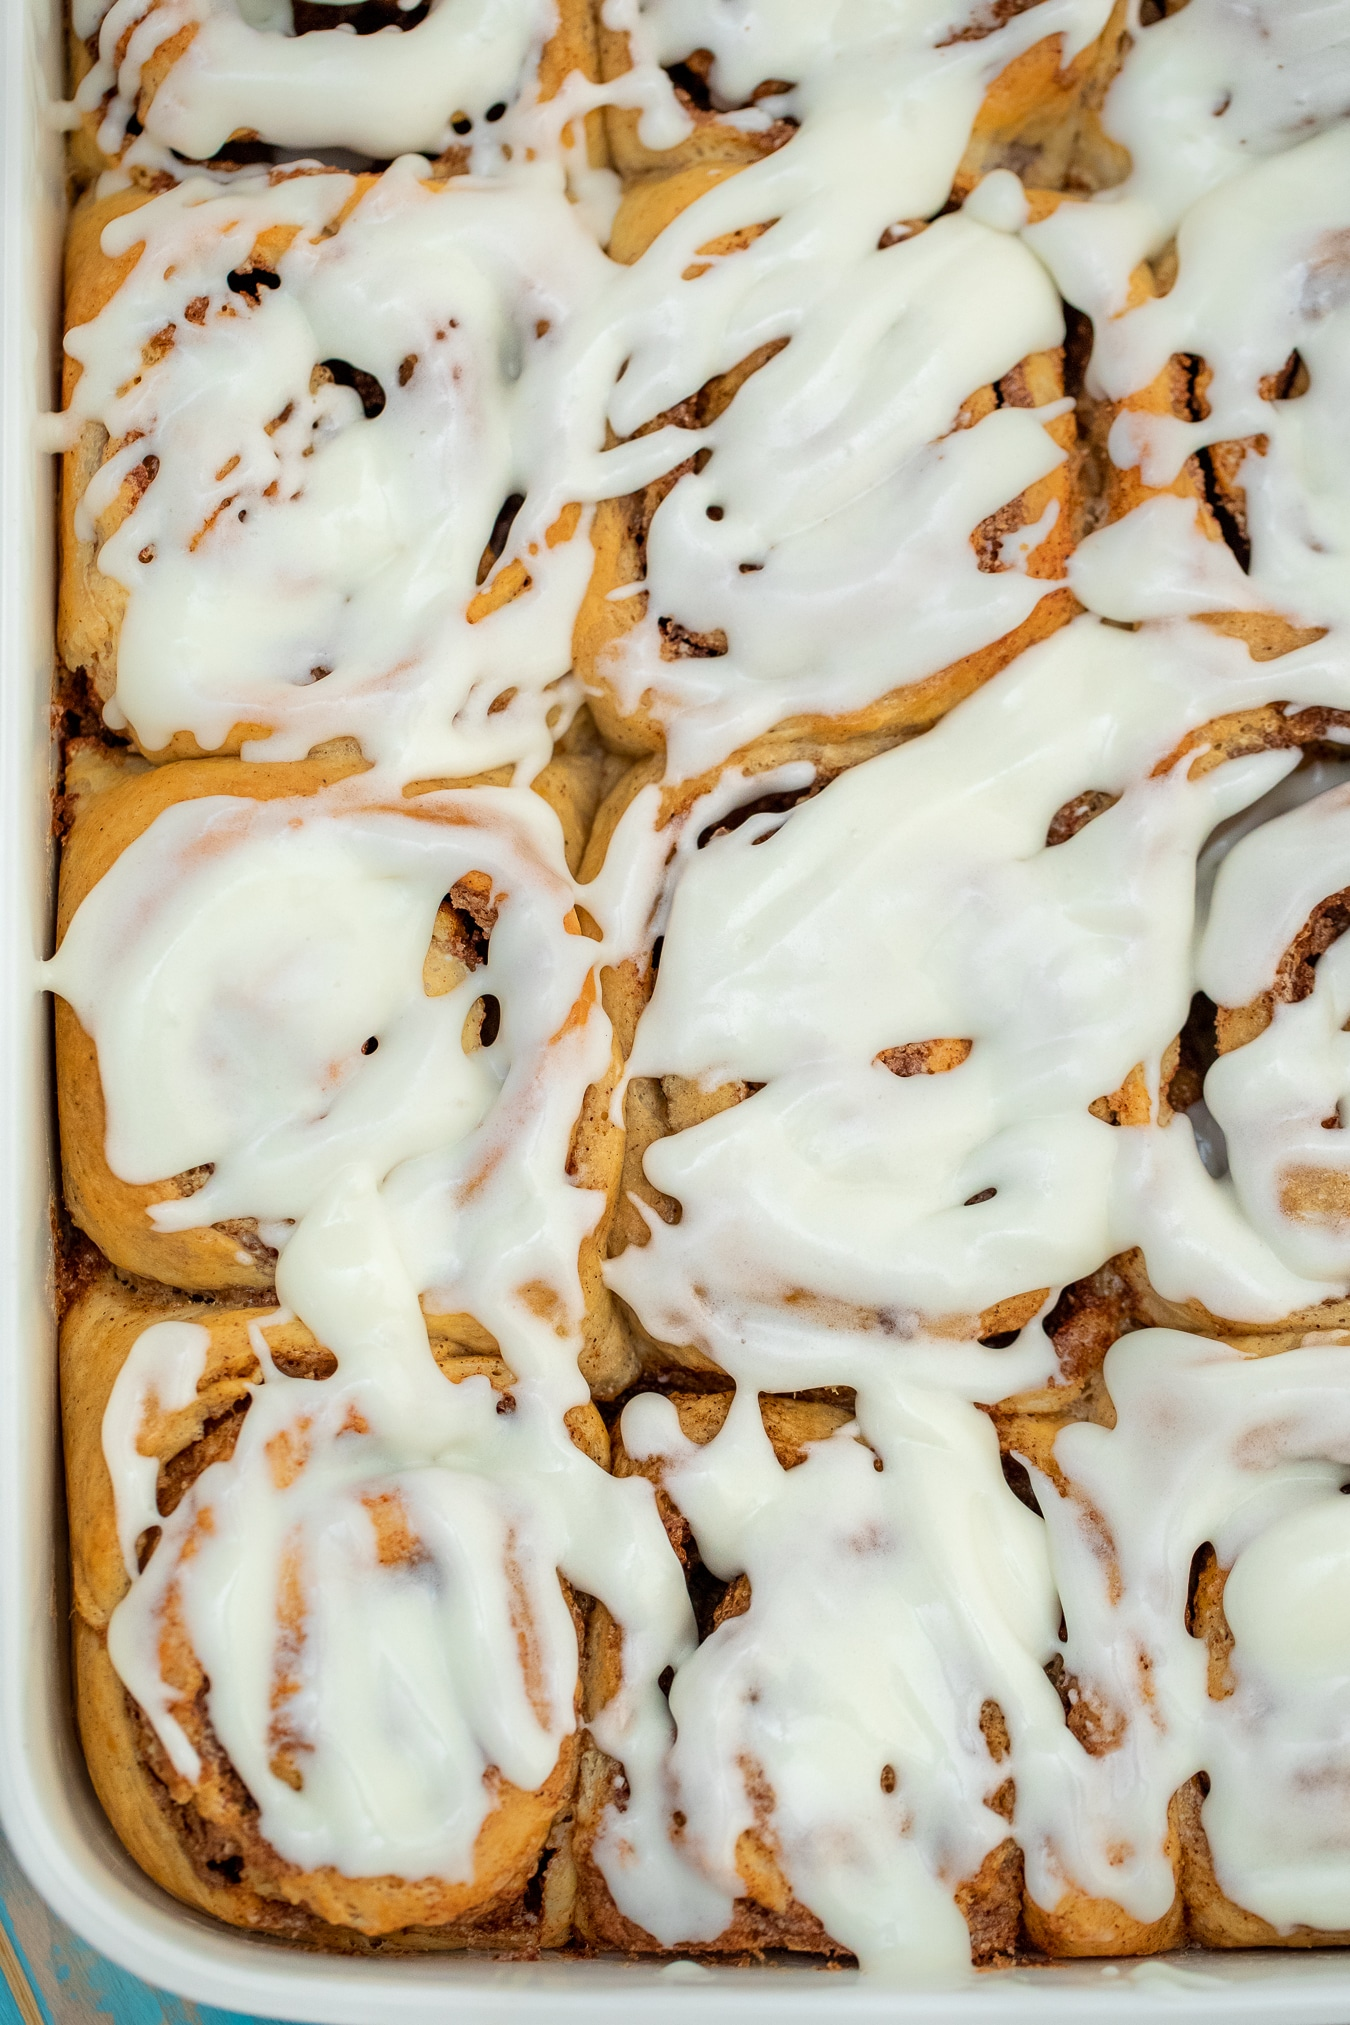 Baking dish of cinnamon rolls